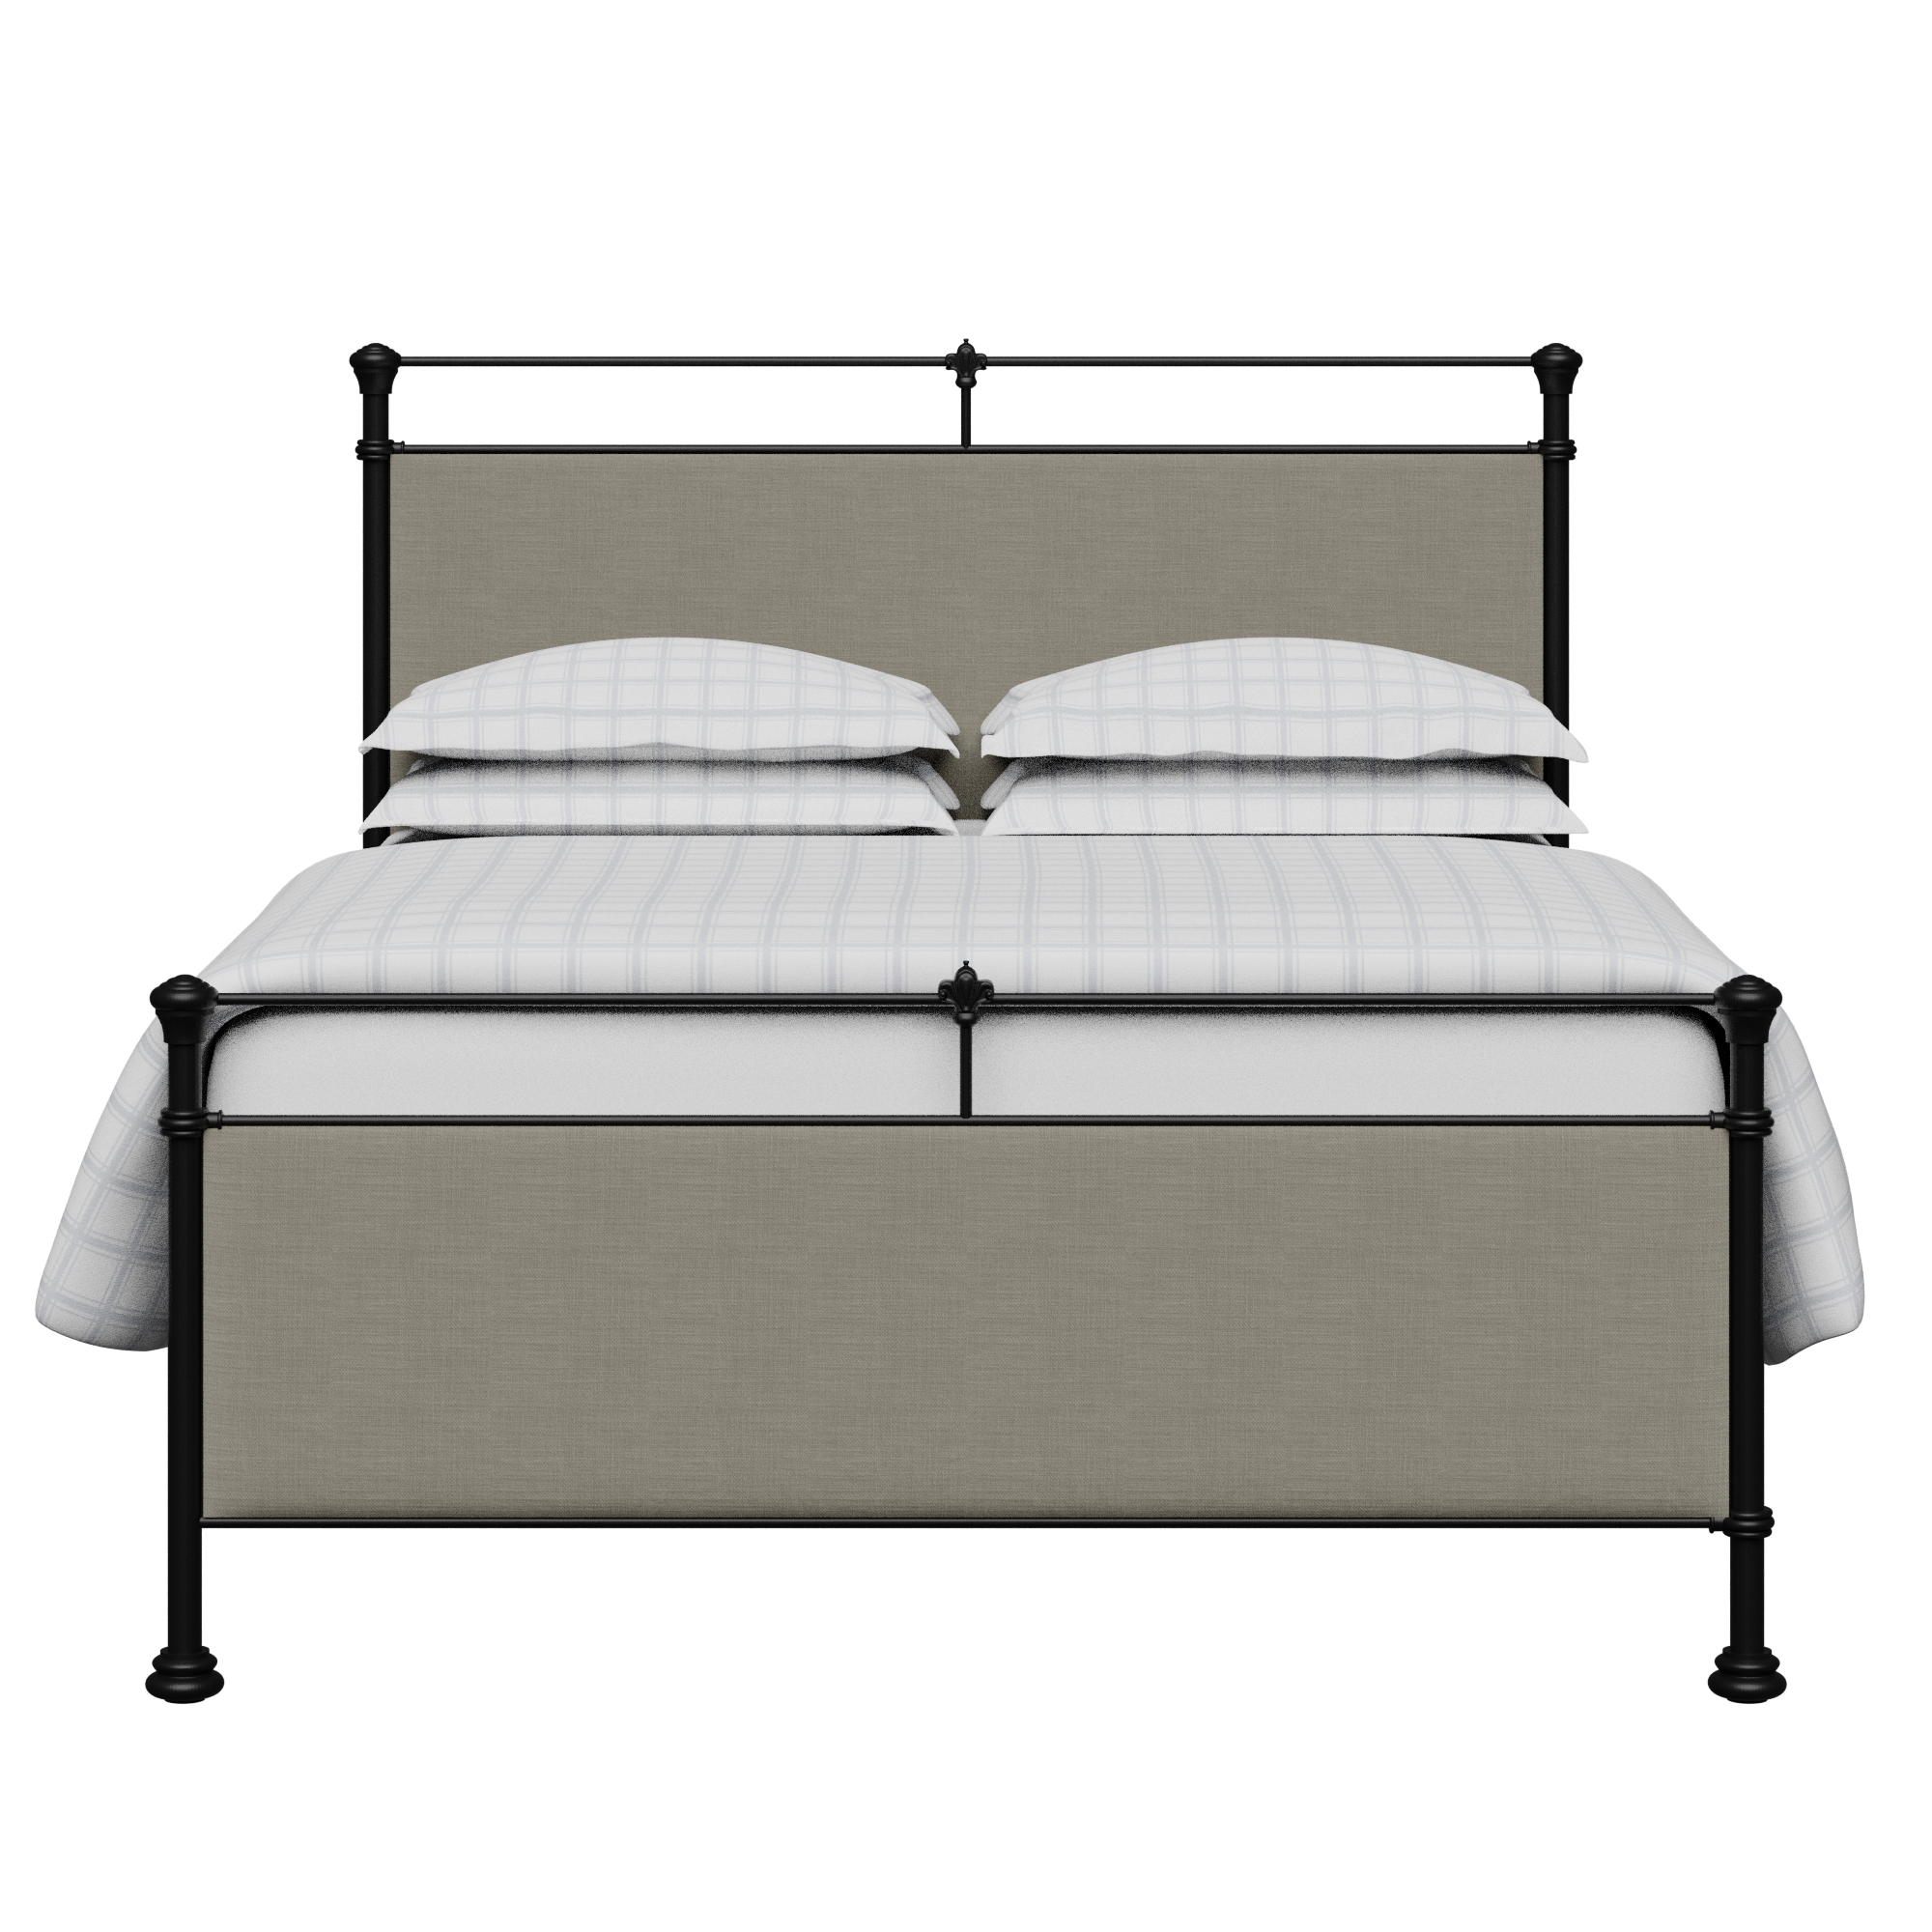 Nancy iron/metal upholstered bed in black with grey fabric